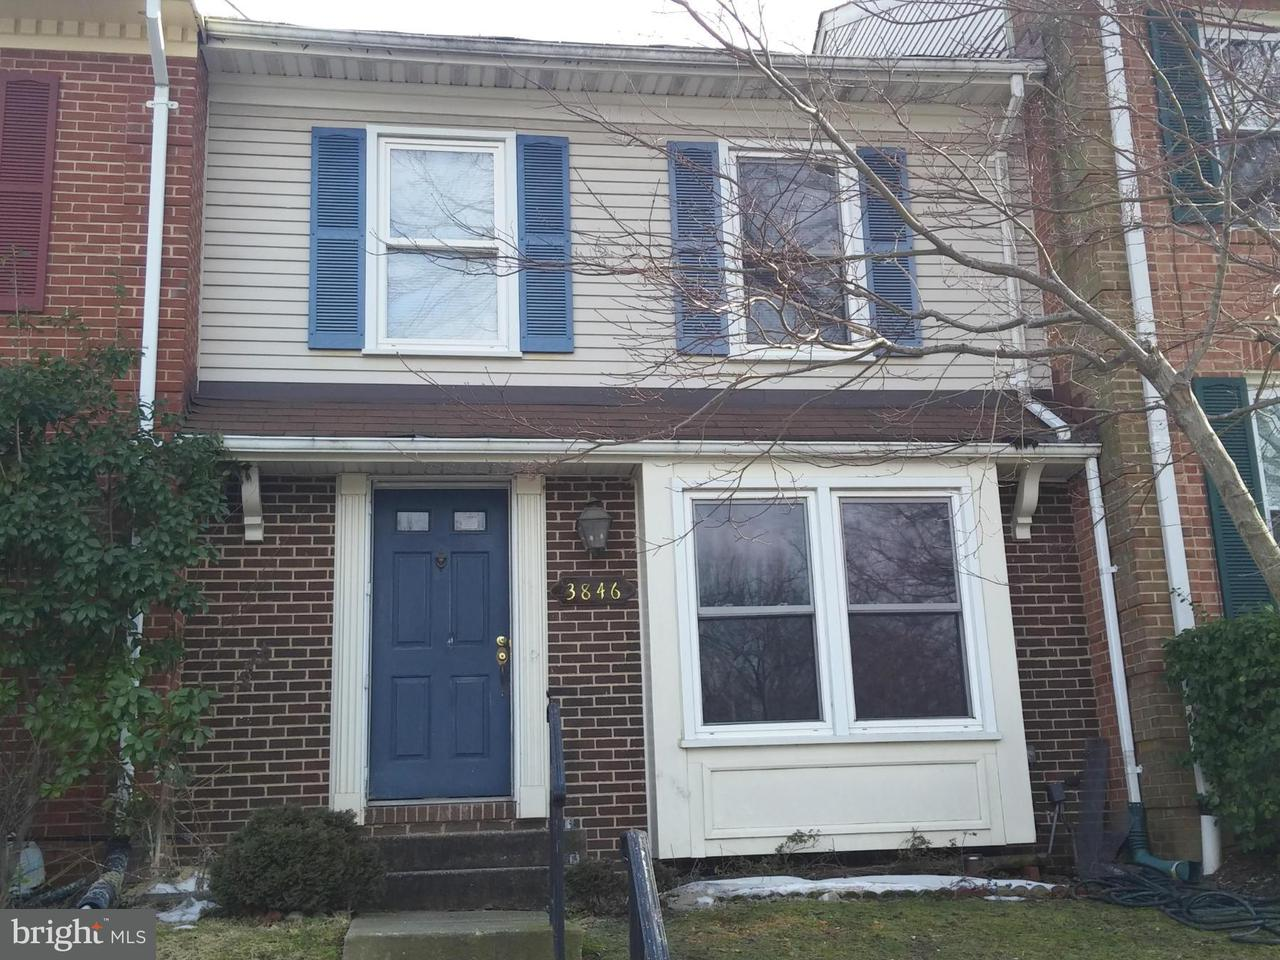 Other Residential for Rent at 3846 Gateway Ter #37 Burtonsville, Maryland 20866 United States